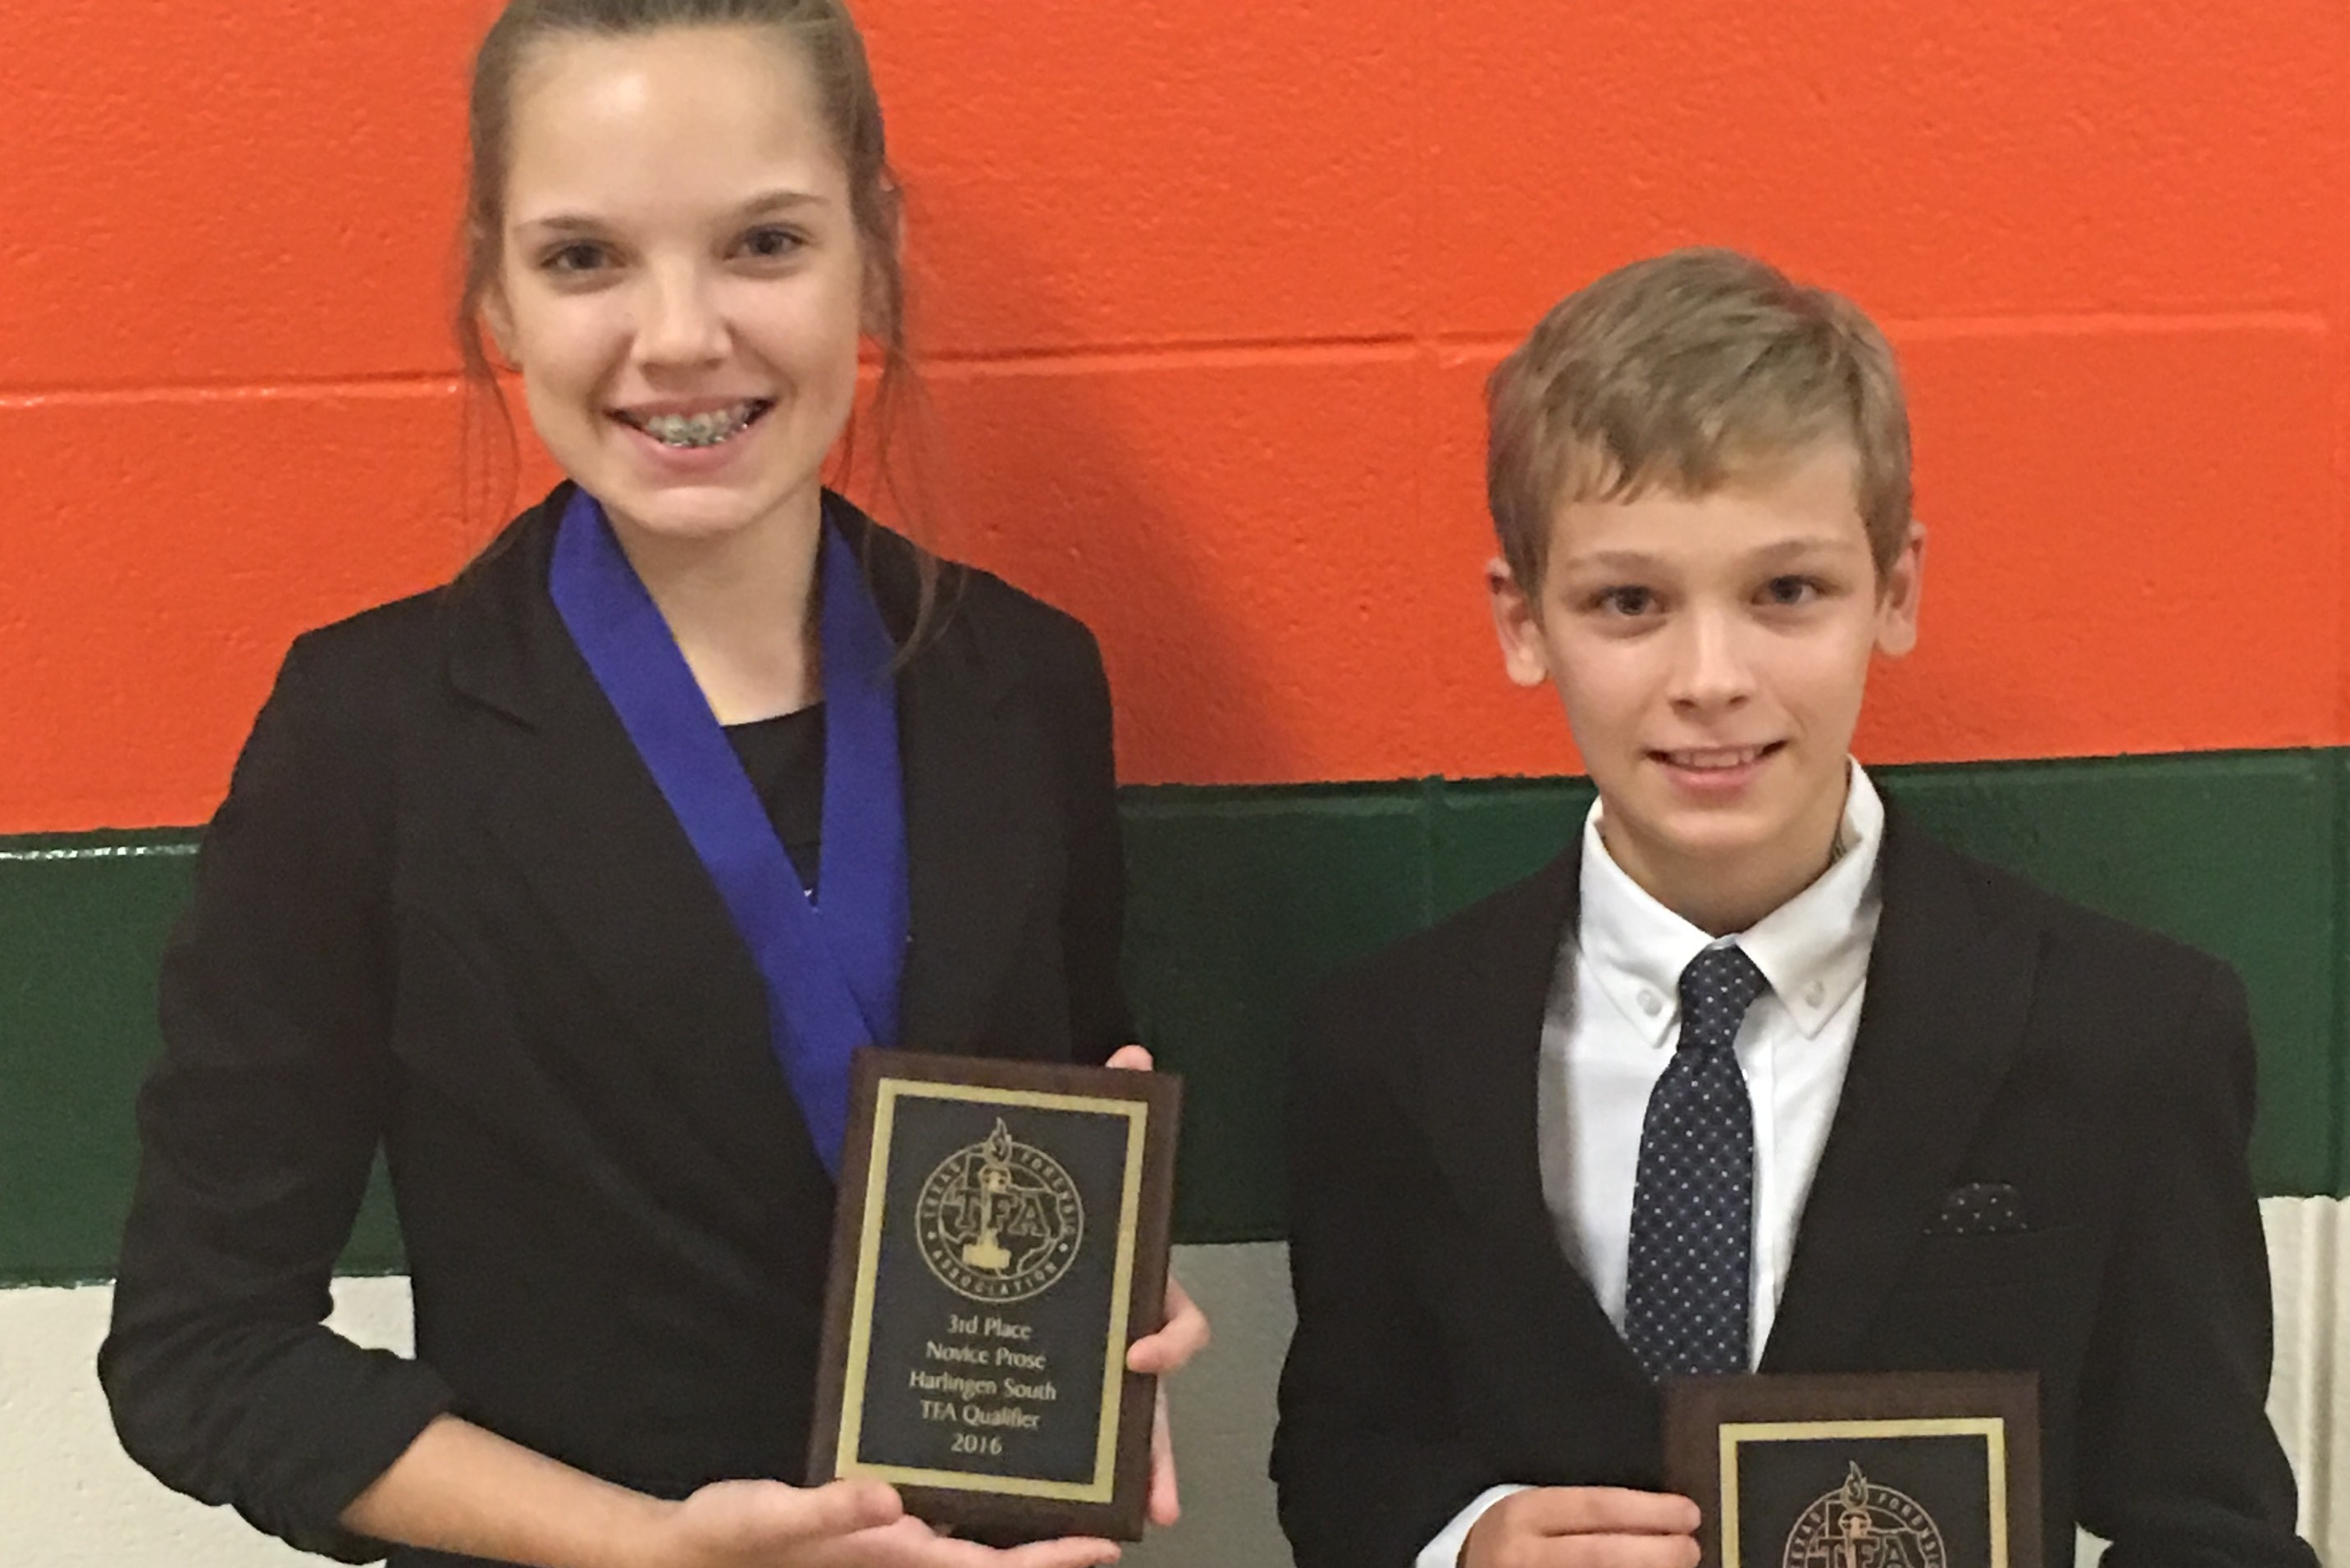 Vela Middle School students give outstanding performances at TFA State qualifying tournament